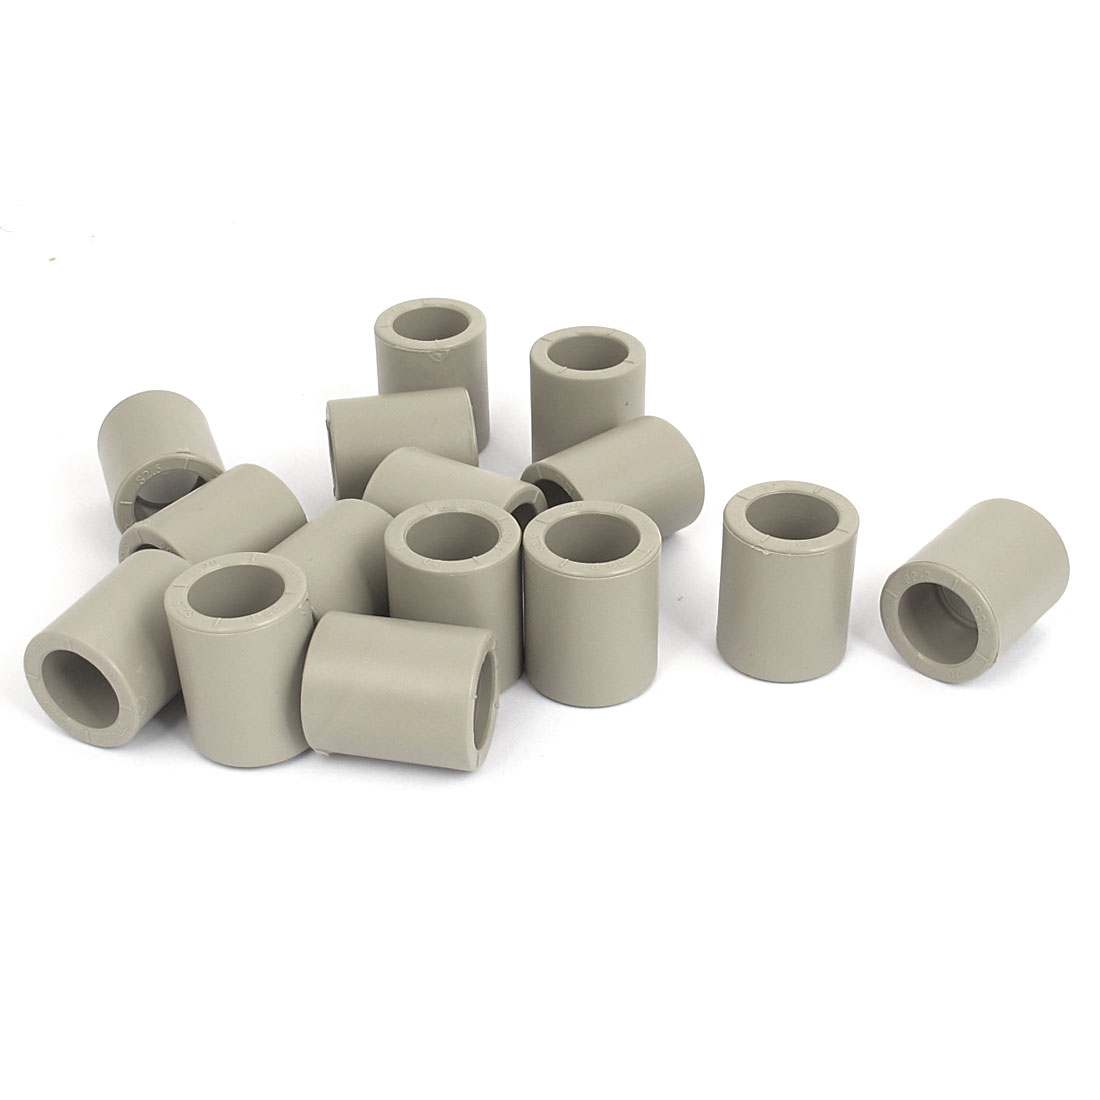 Straight PPR Pipe Connectors Fittings Gray 20mm Inner Diameter 15 Pcs